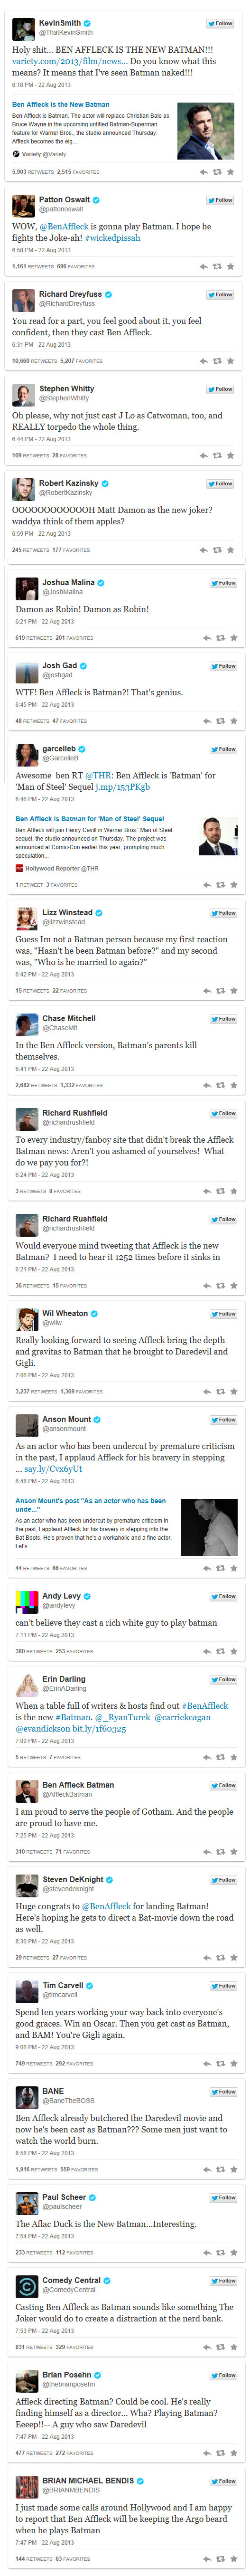 Batman Tweets